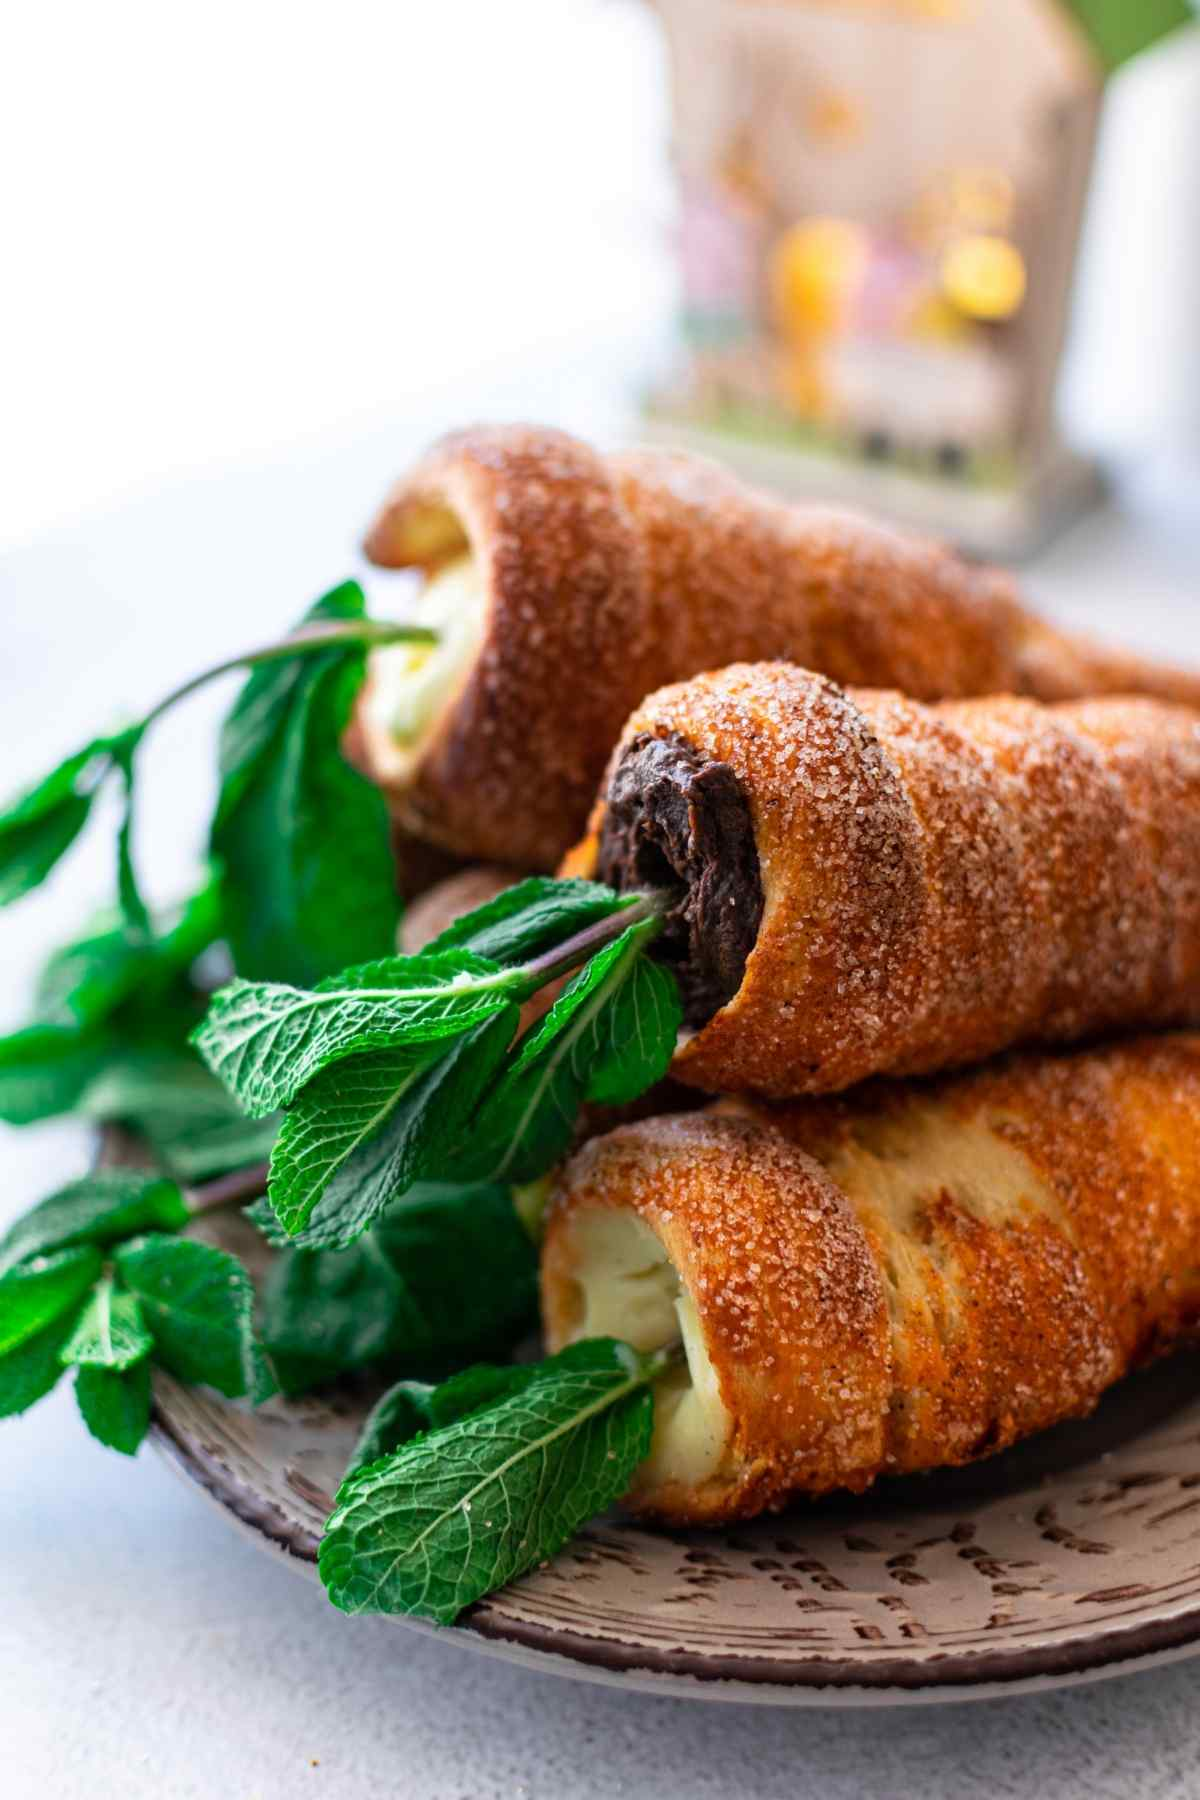 Stack of chimney cone carrot with mint leaves